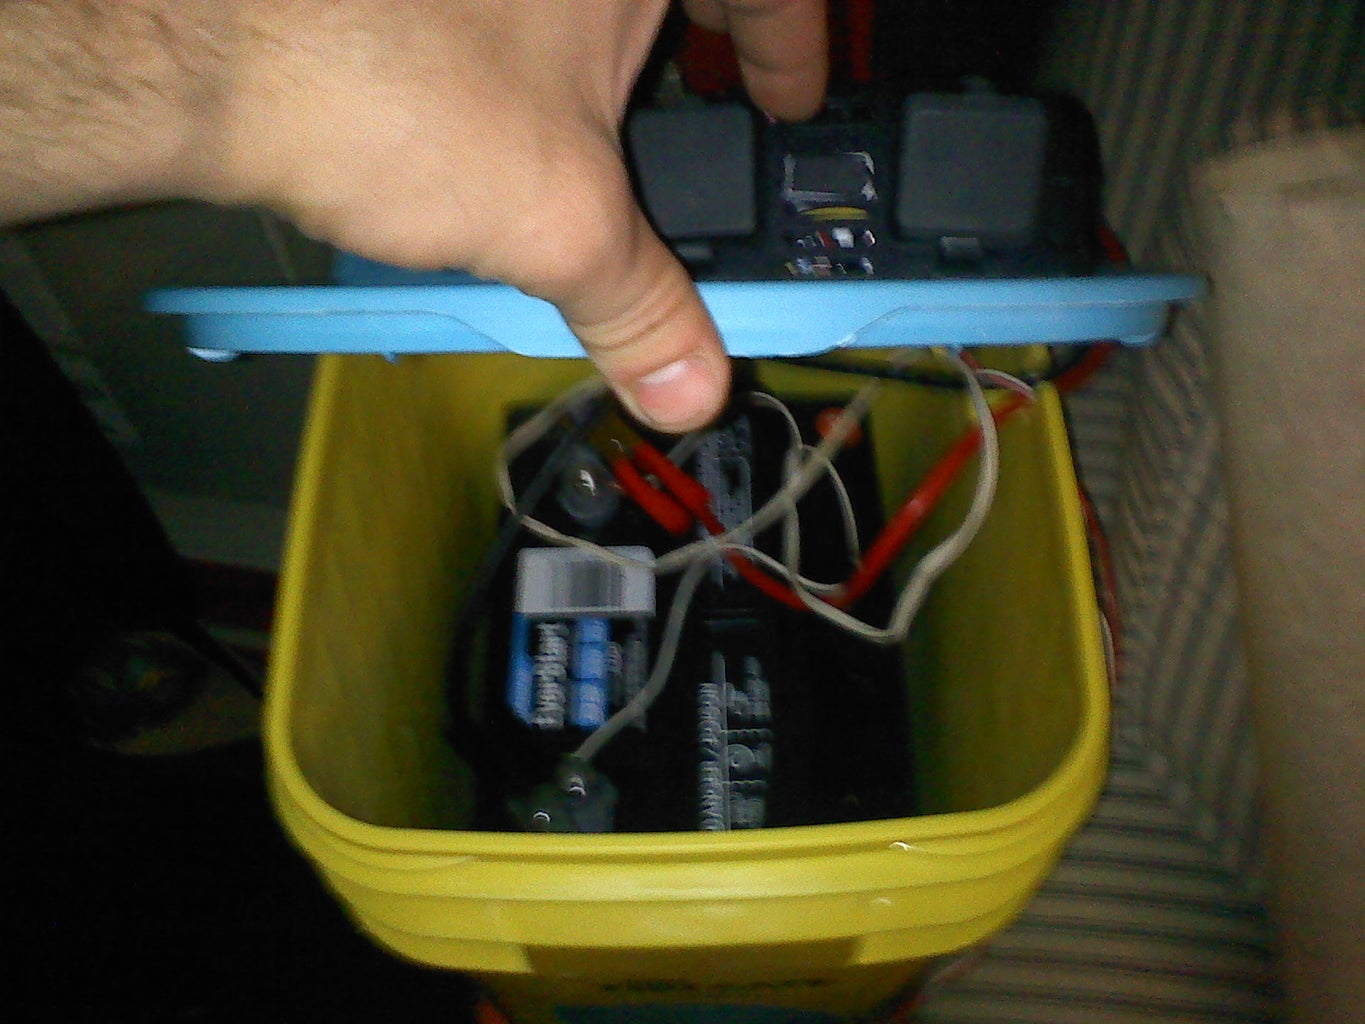 Building the Voltage Regulator, Hooking Up the Electronics and Battery